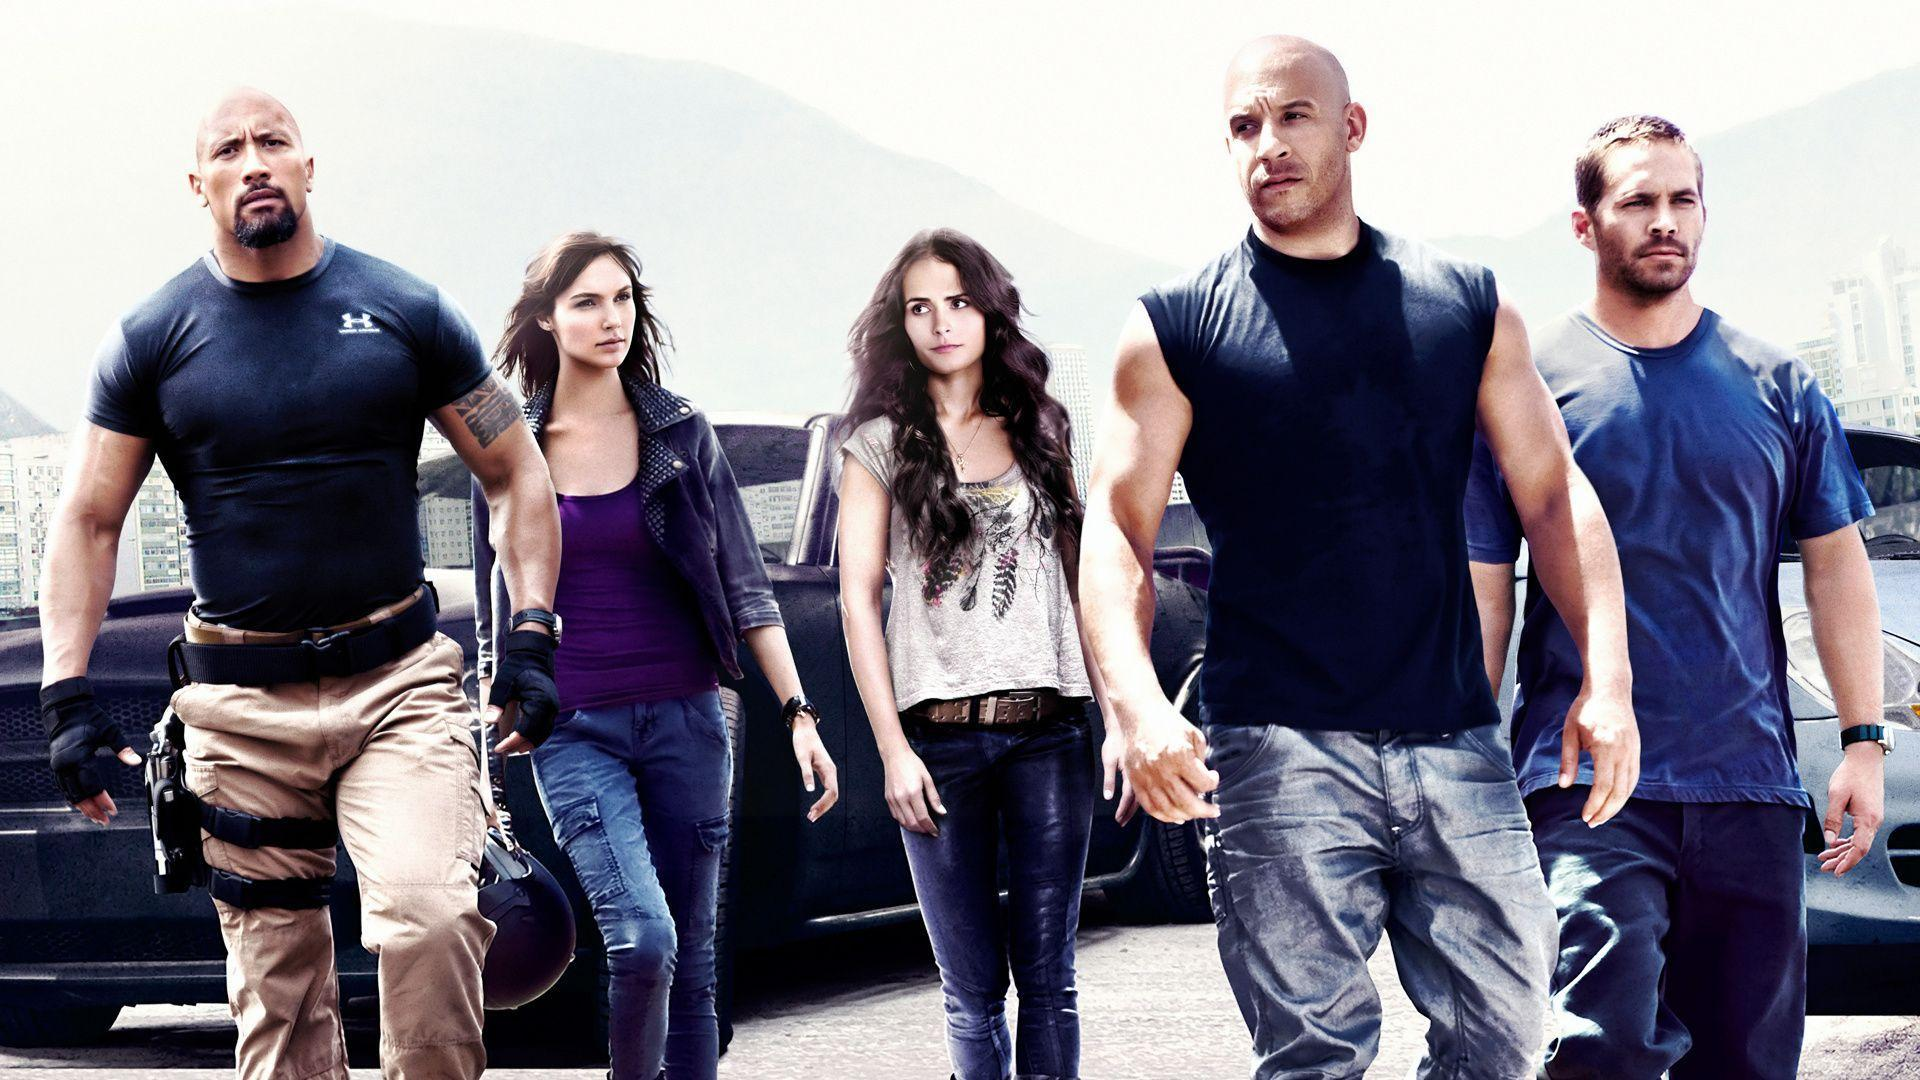 Images: Fast and Furious 8